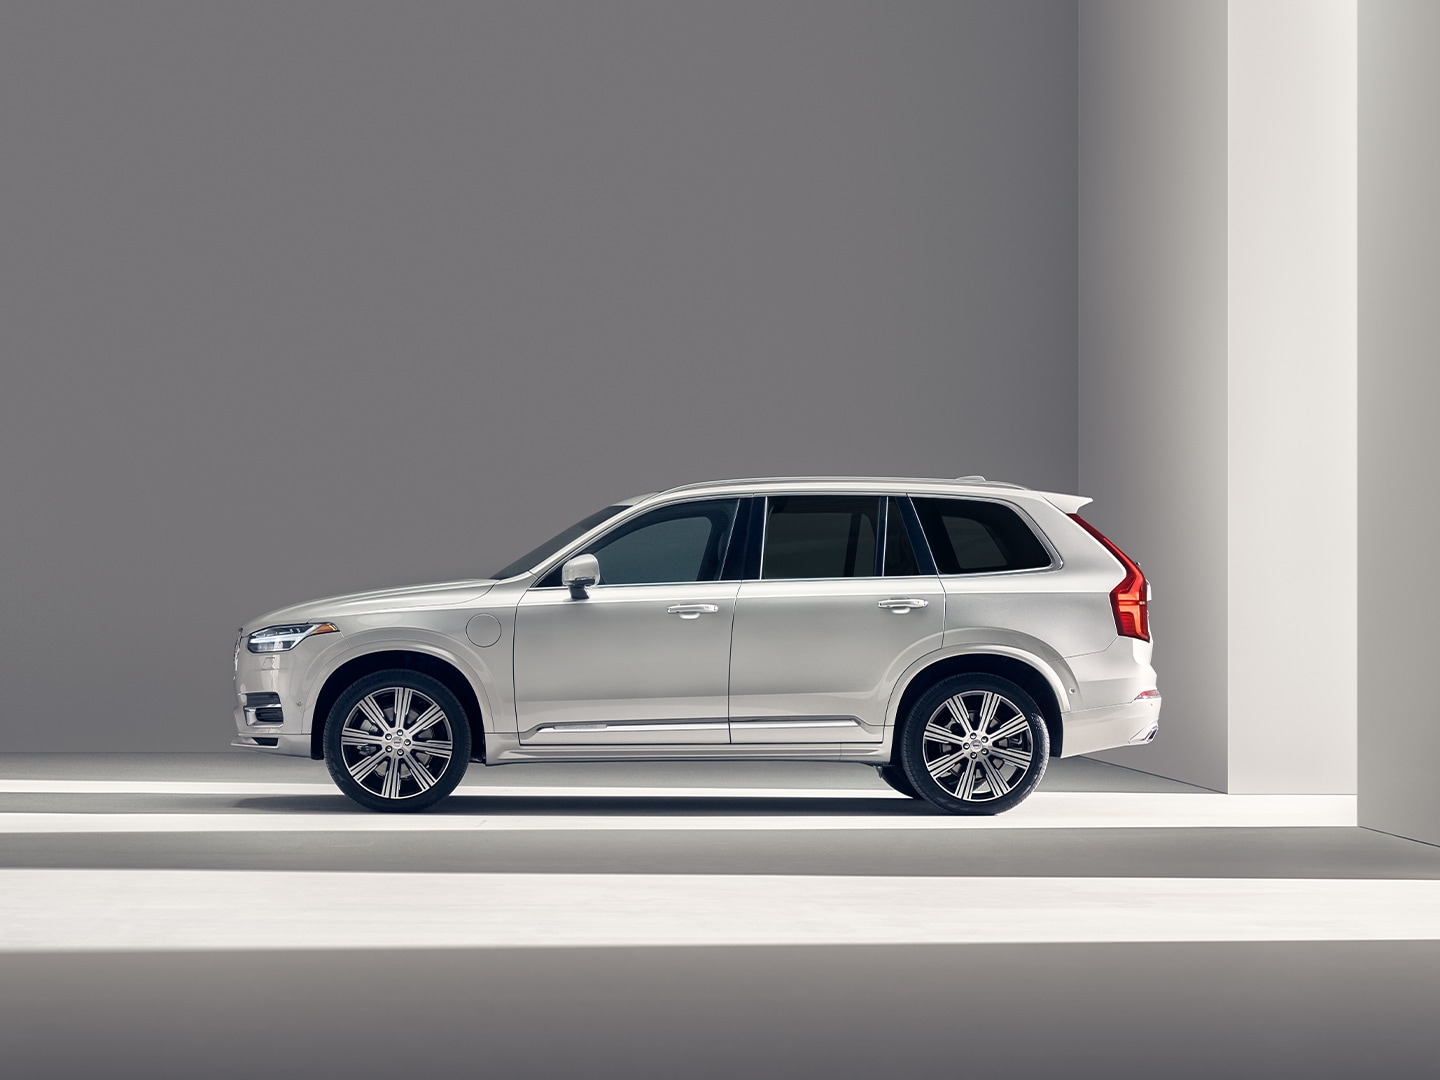 A white Volvo SUV XC90 Recharge standing still